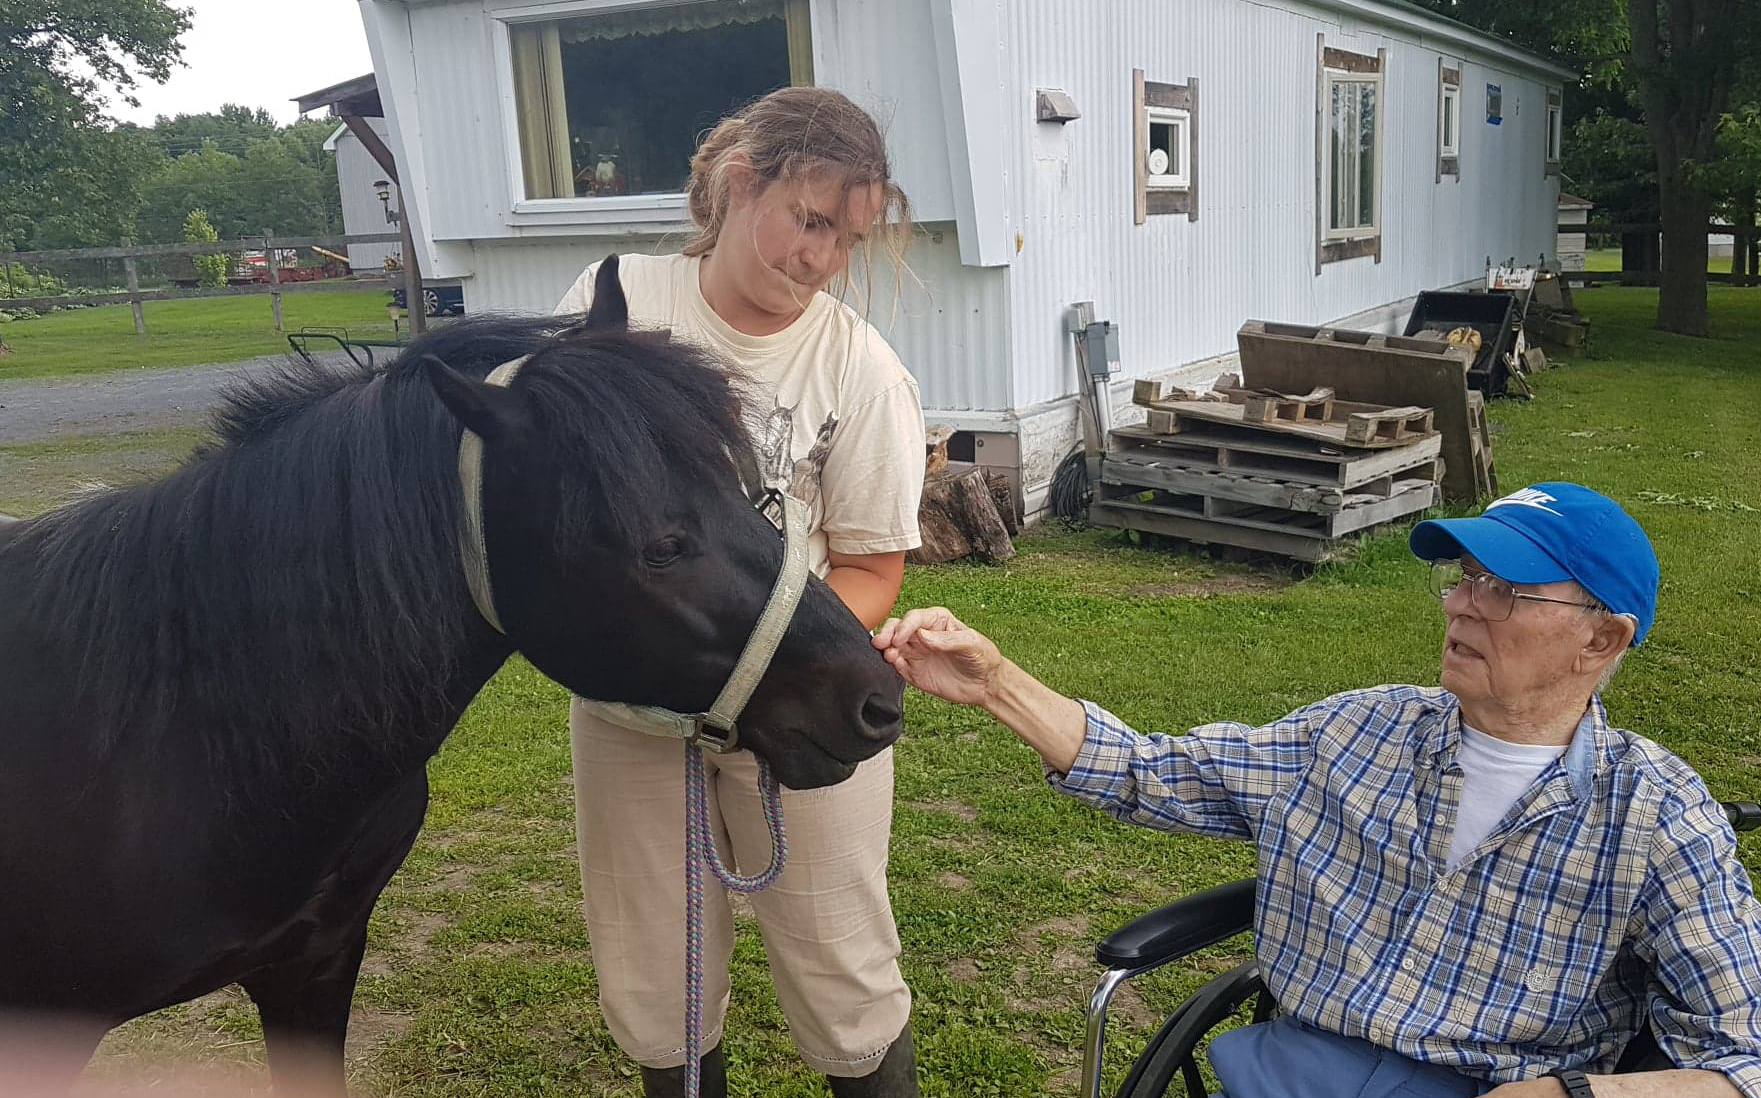 Robert is outside petting the horse from his wheelchair